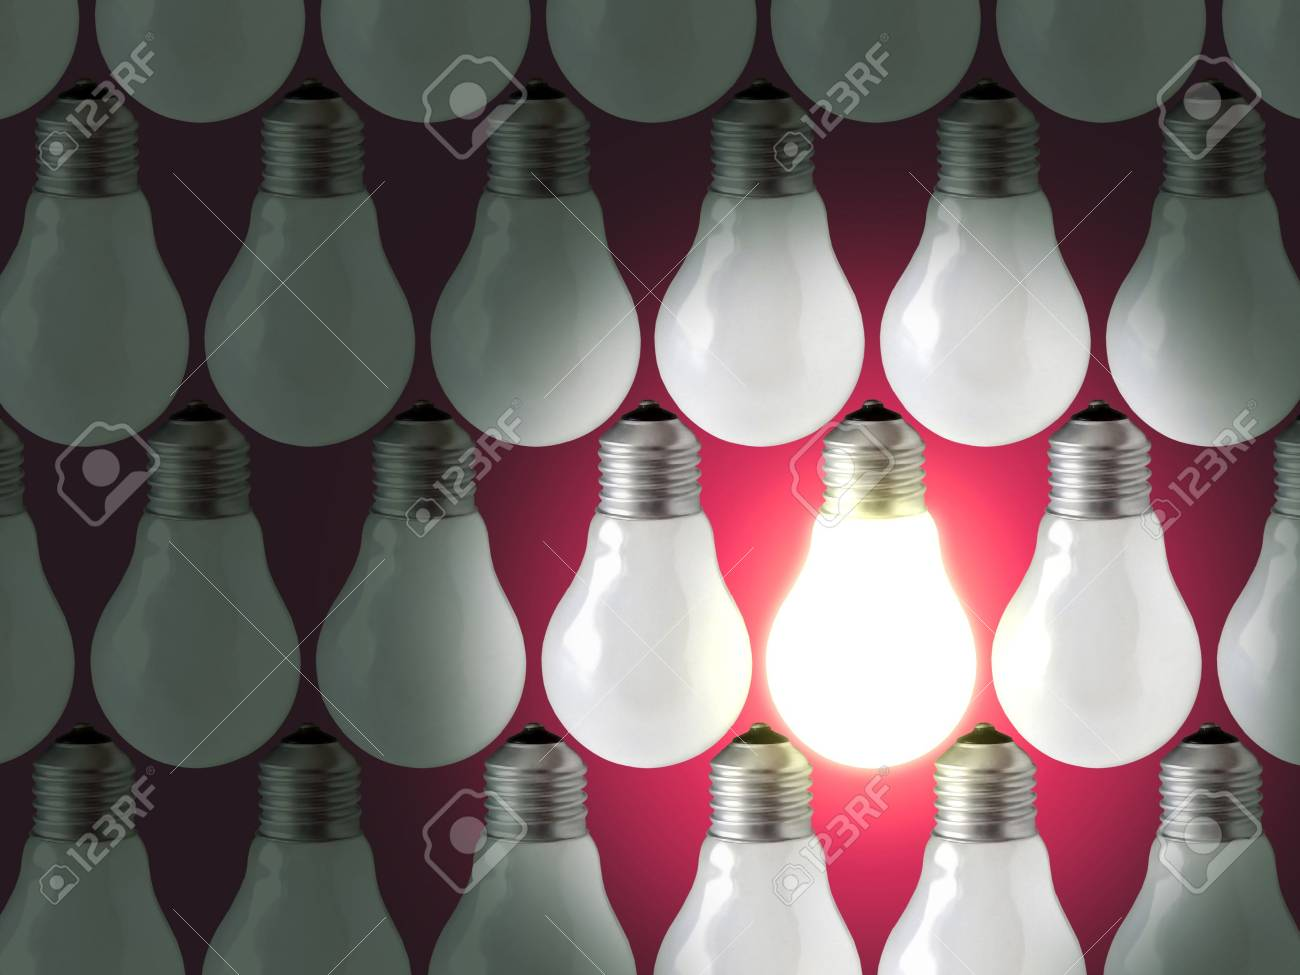 Composition of rows of lamp bulbs over red background. One of the lamps is on. Stock Photo - 2426813